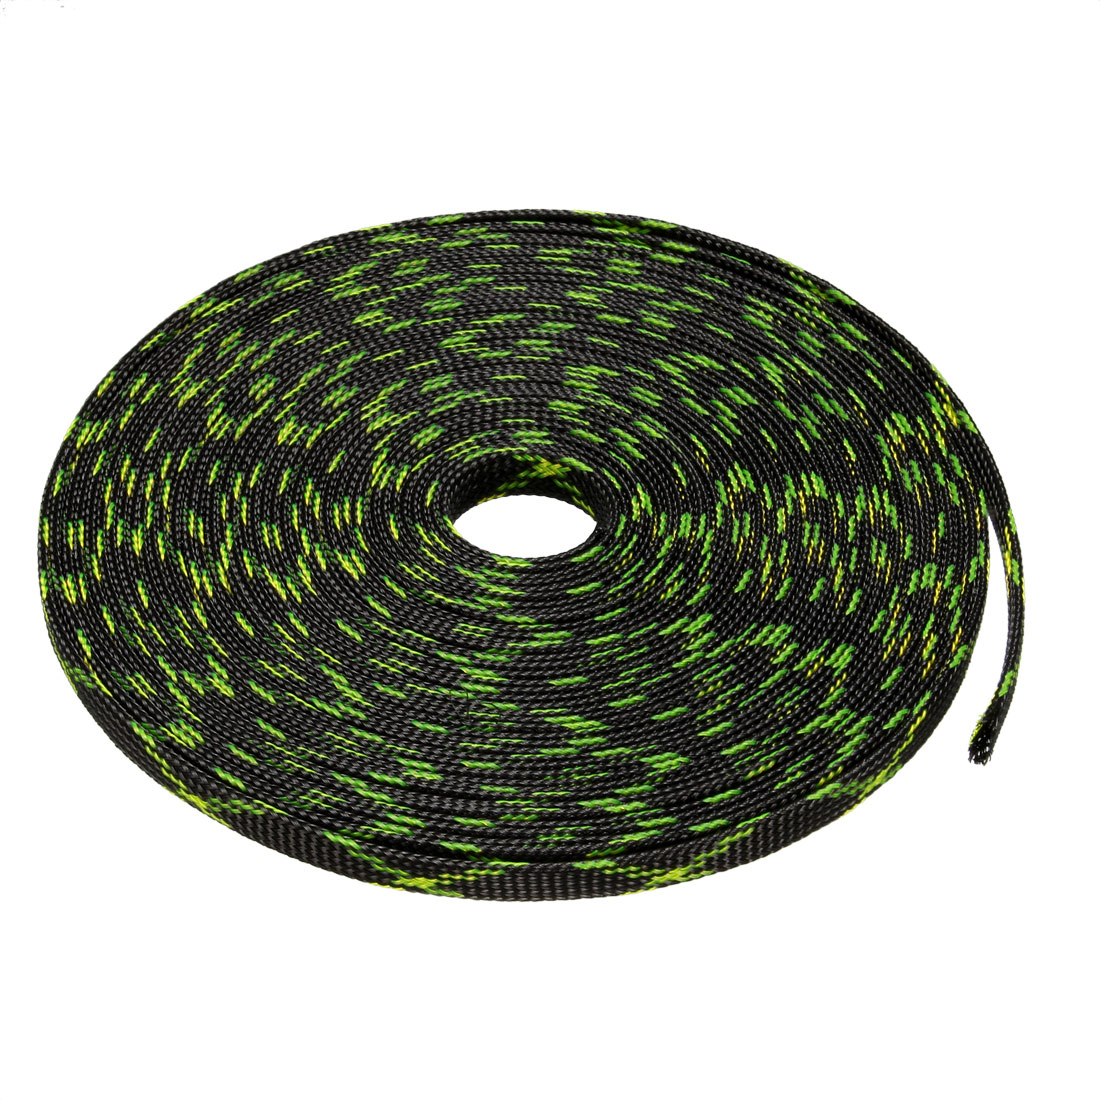 6mm PET Cable Wire Wrap Expandable Braided Sleeving Black Fluorescent Green 10M Length